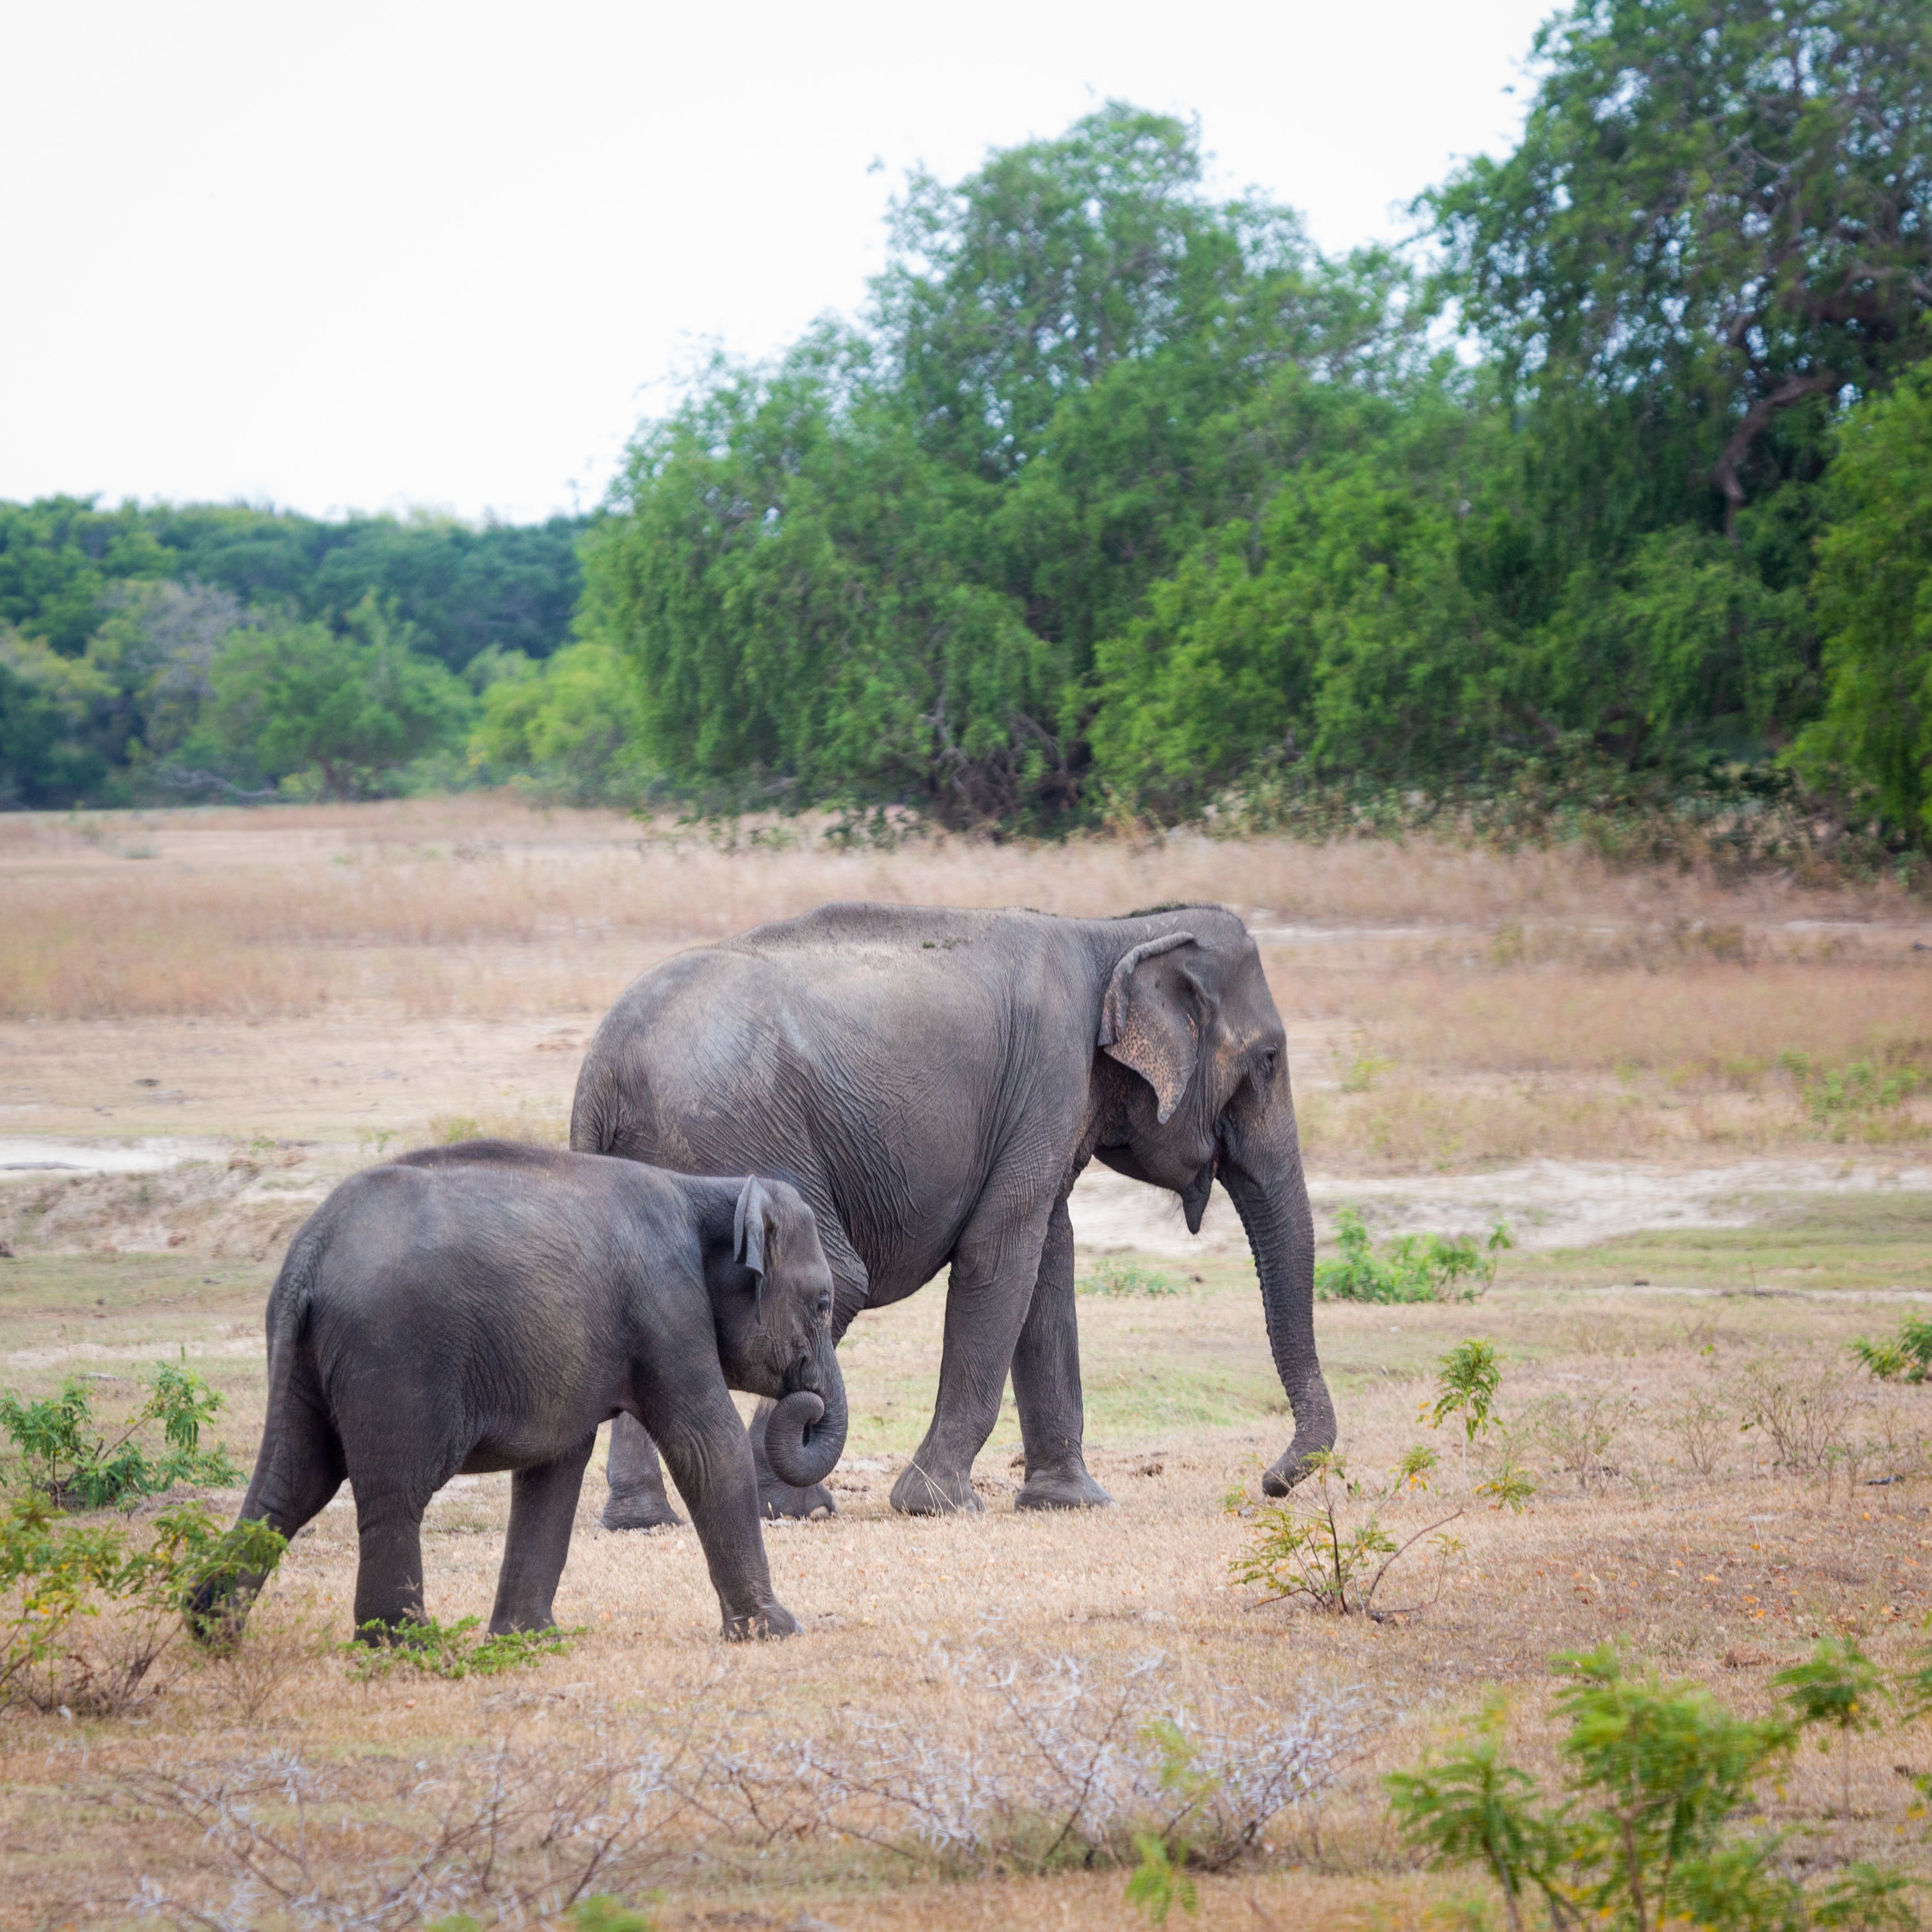 What you can expect from a visit to Yala National Park: Elephants